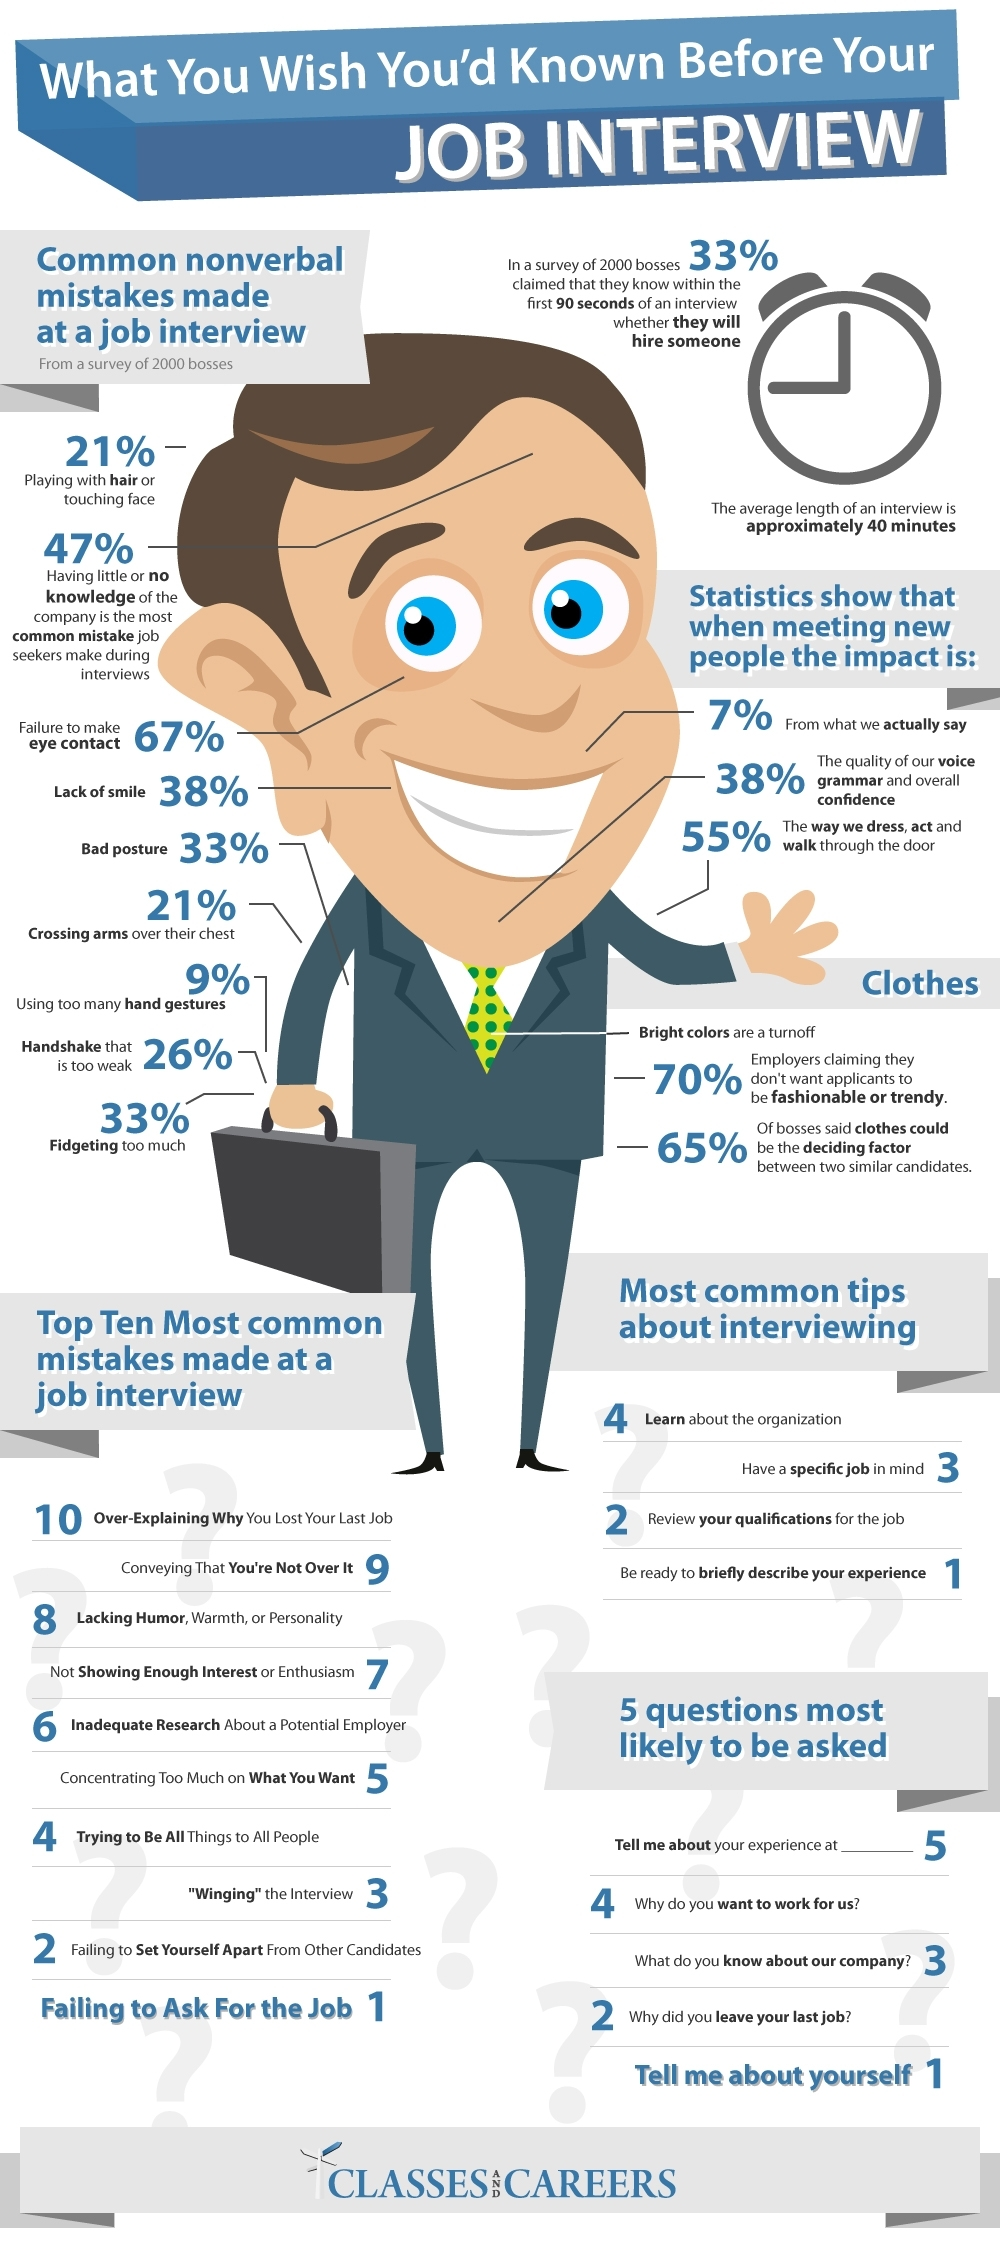 interviews career center uncw interview infographic middot interview stream logo